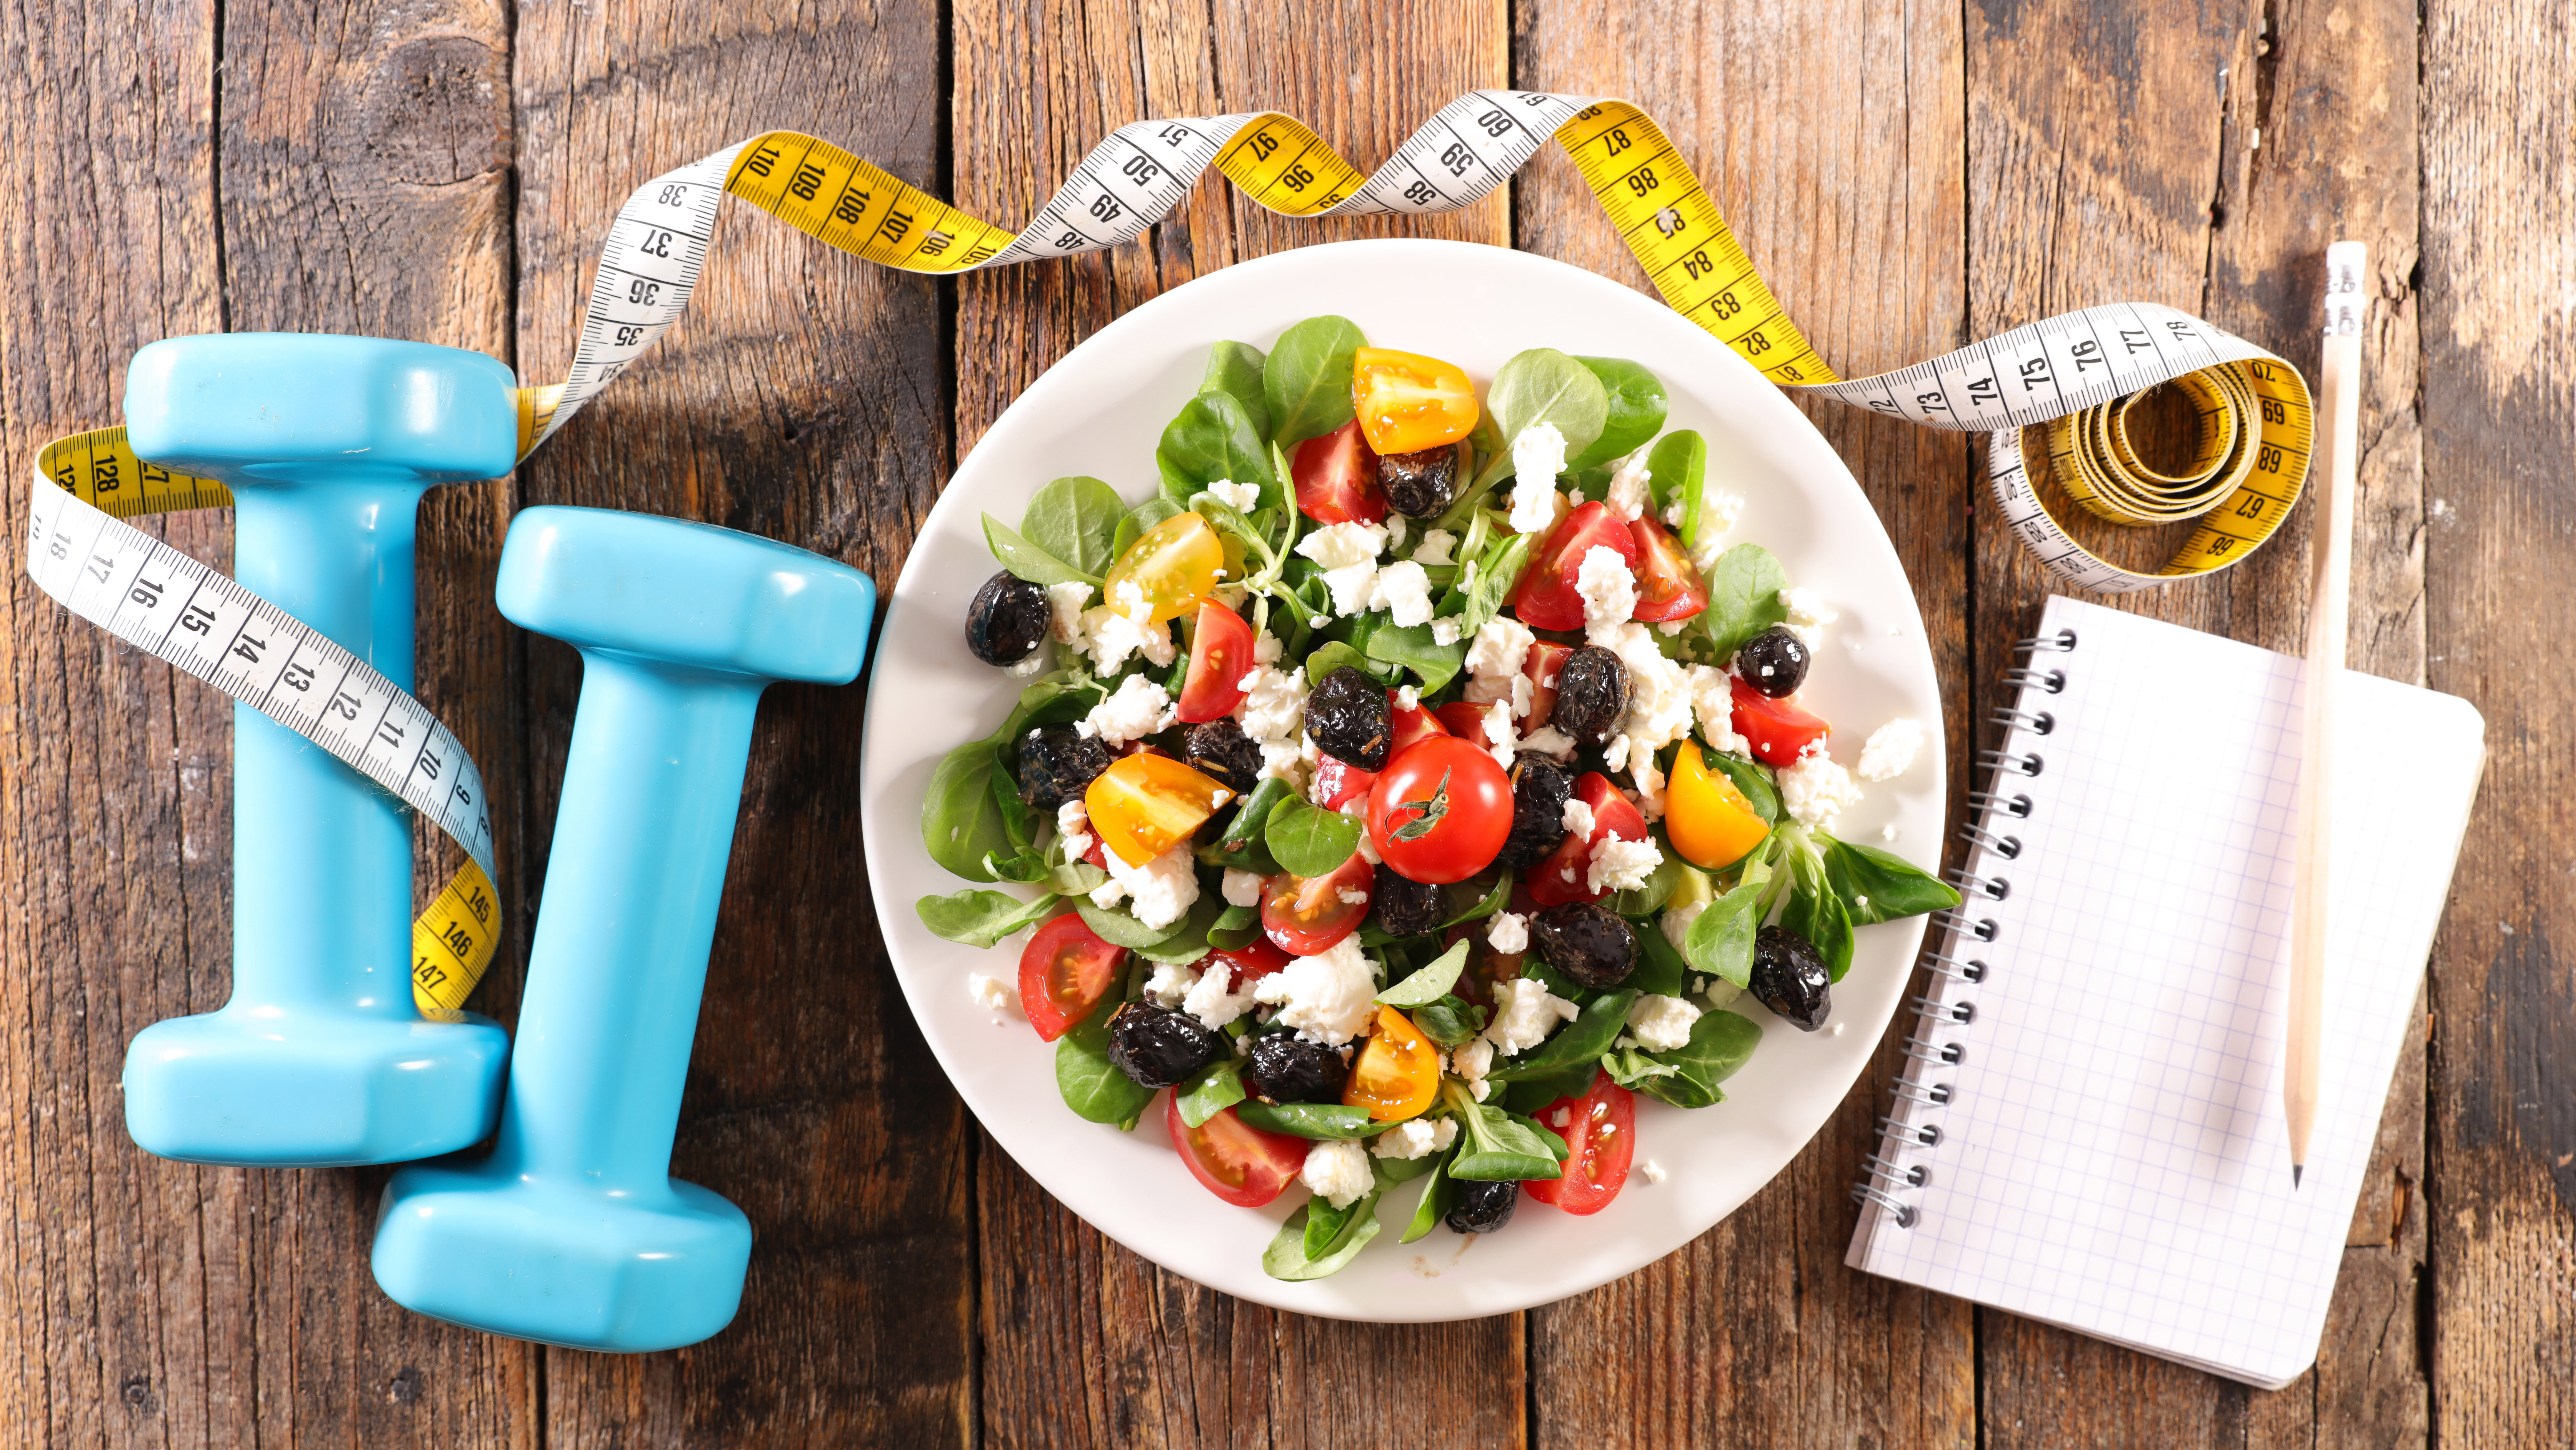 Take advantage of your FREE sessions with a registered dietitian